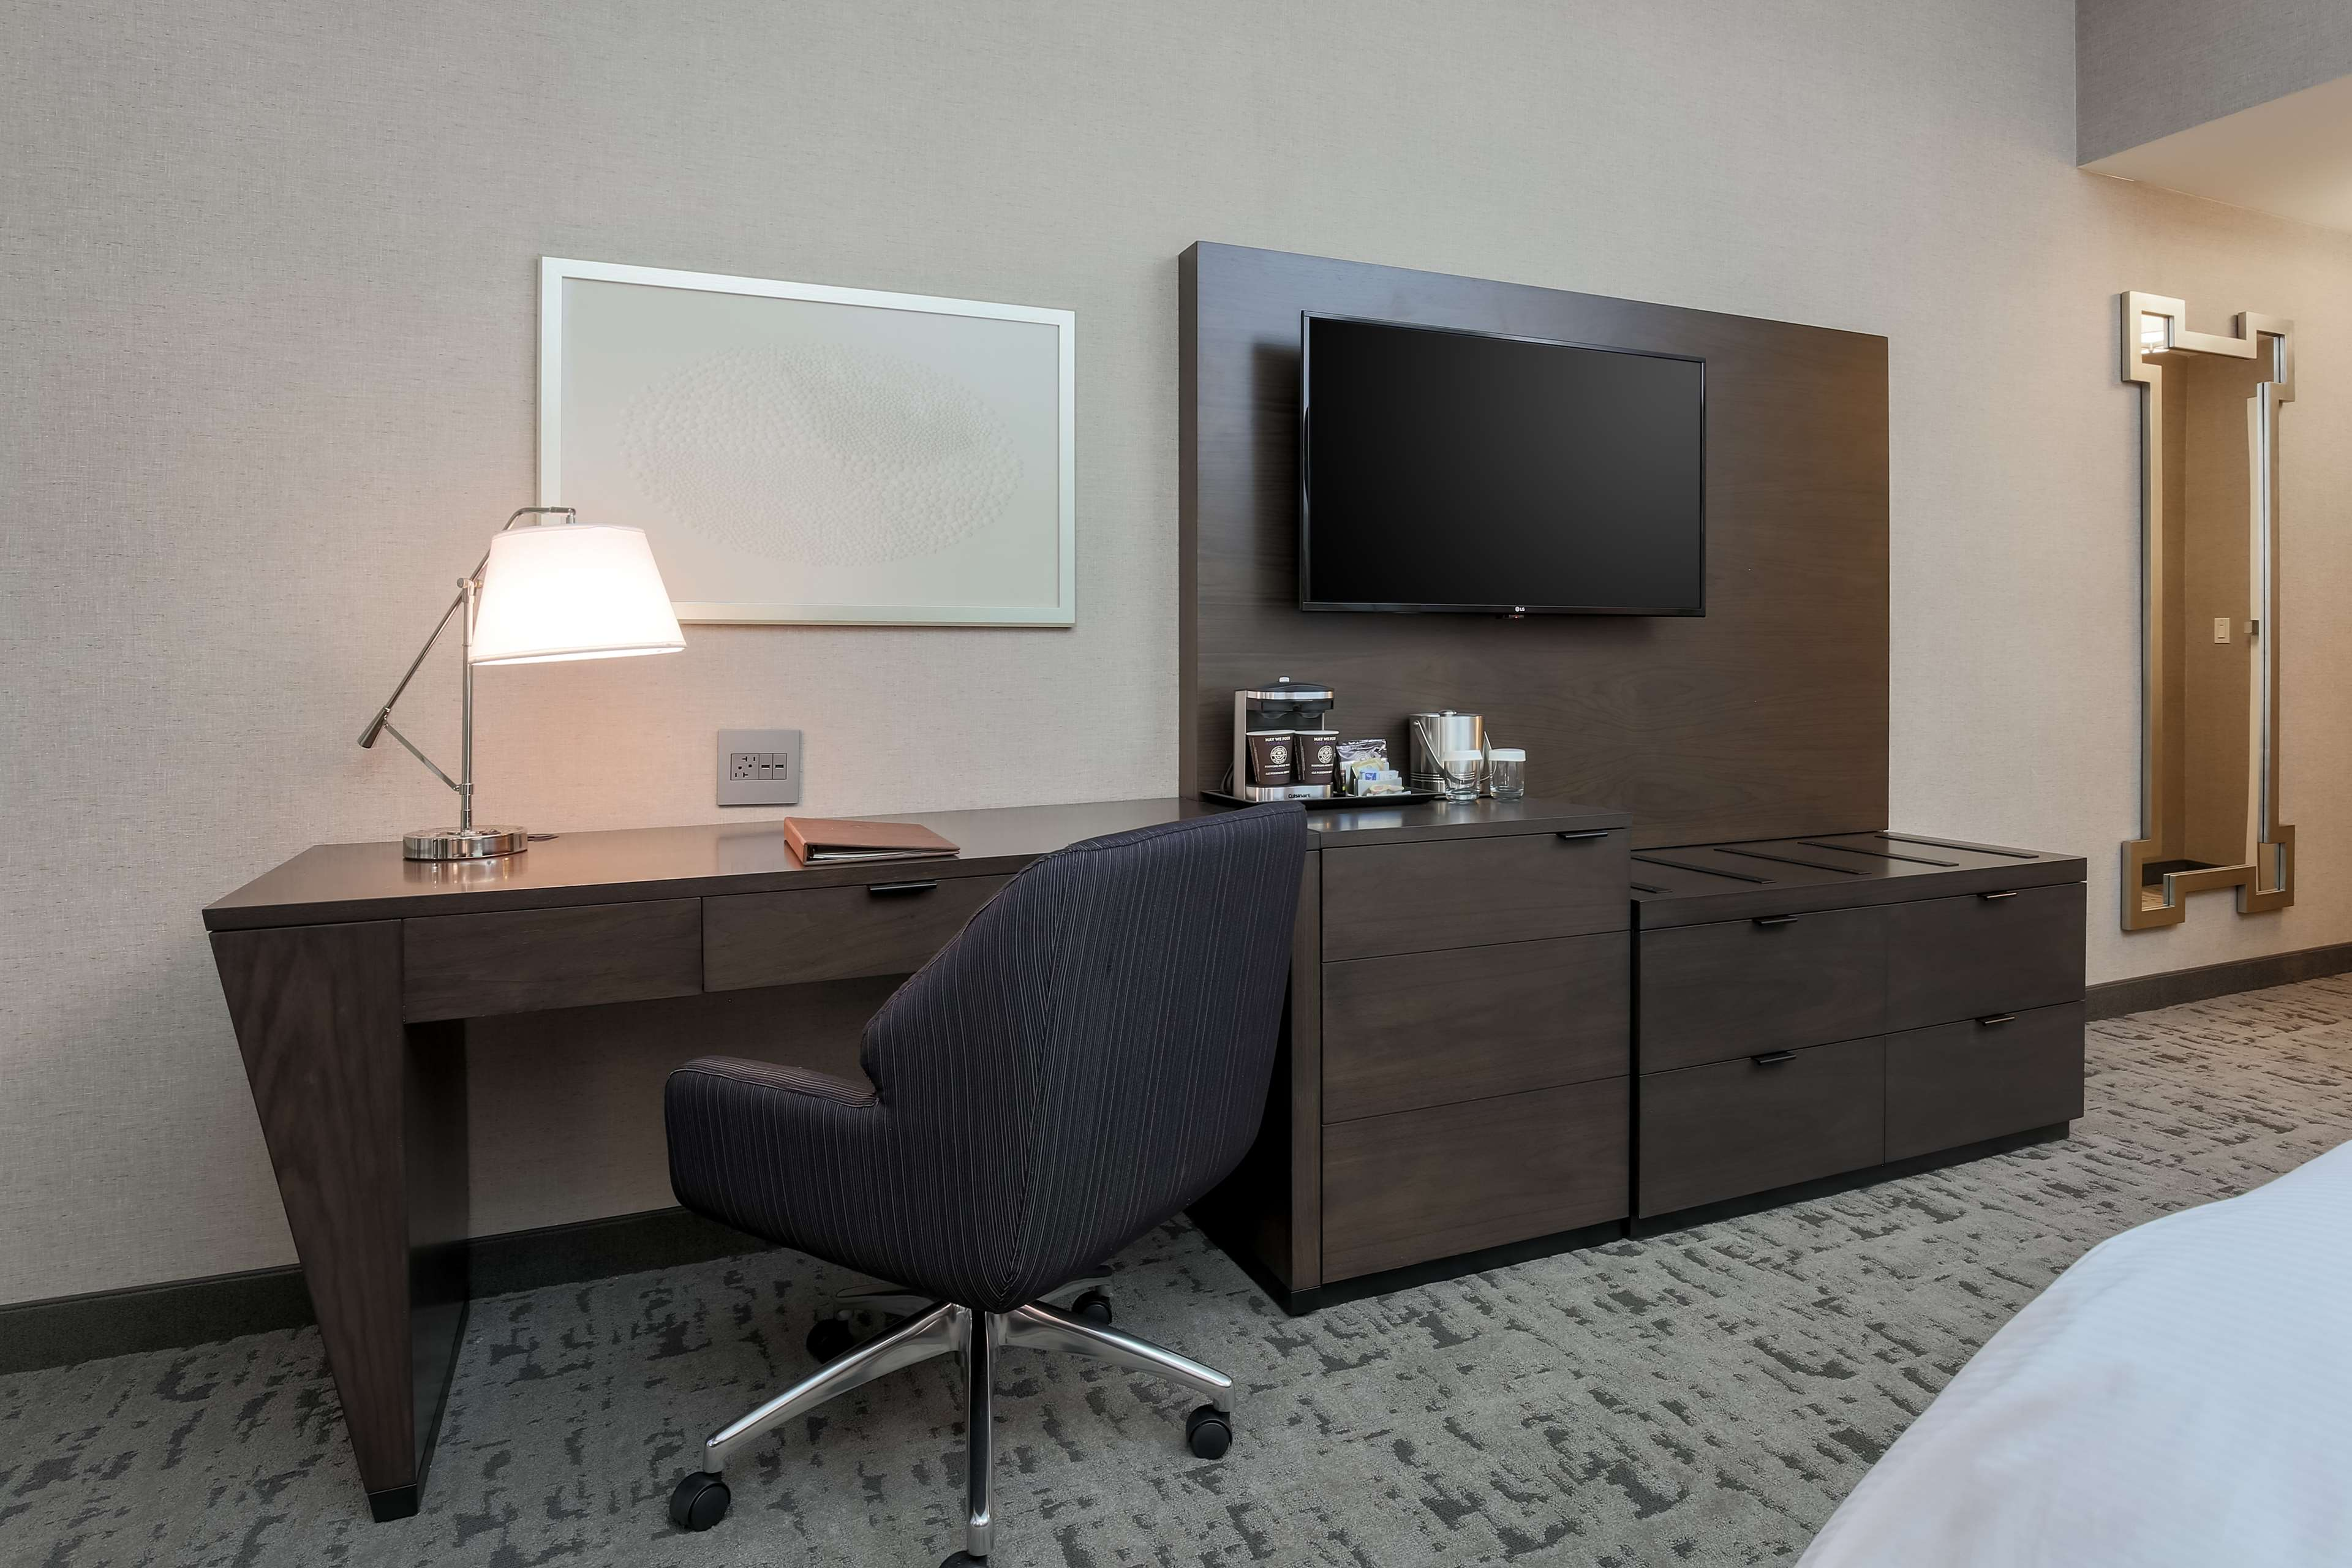 DoubleTree by Hilton Evansville image 46